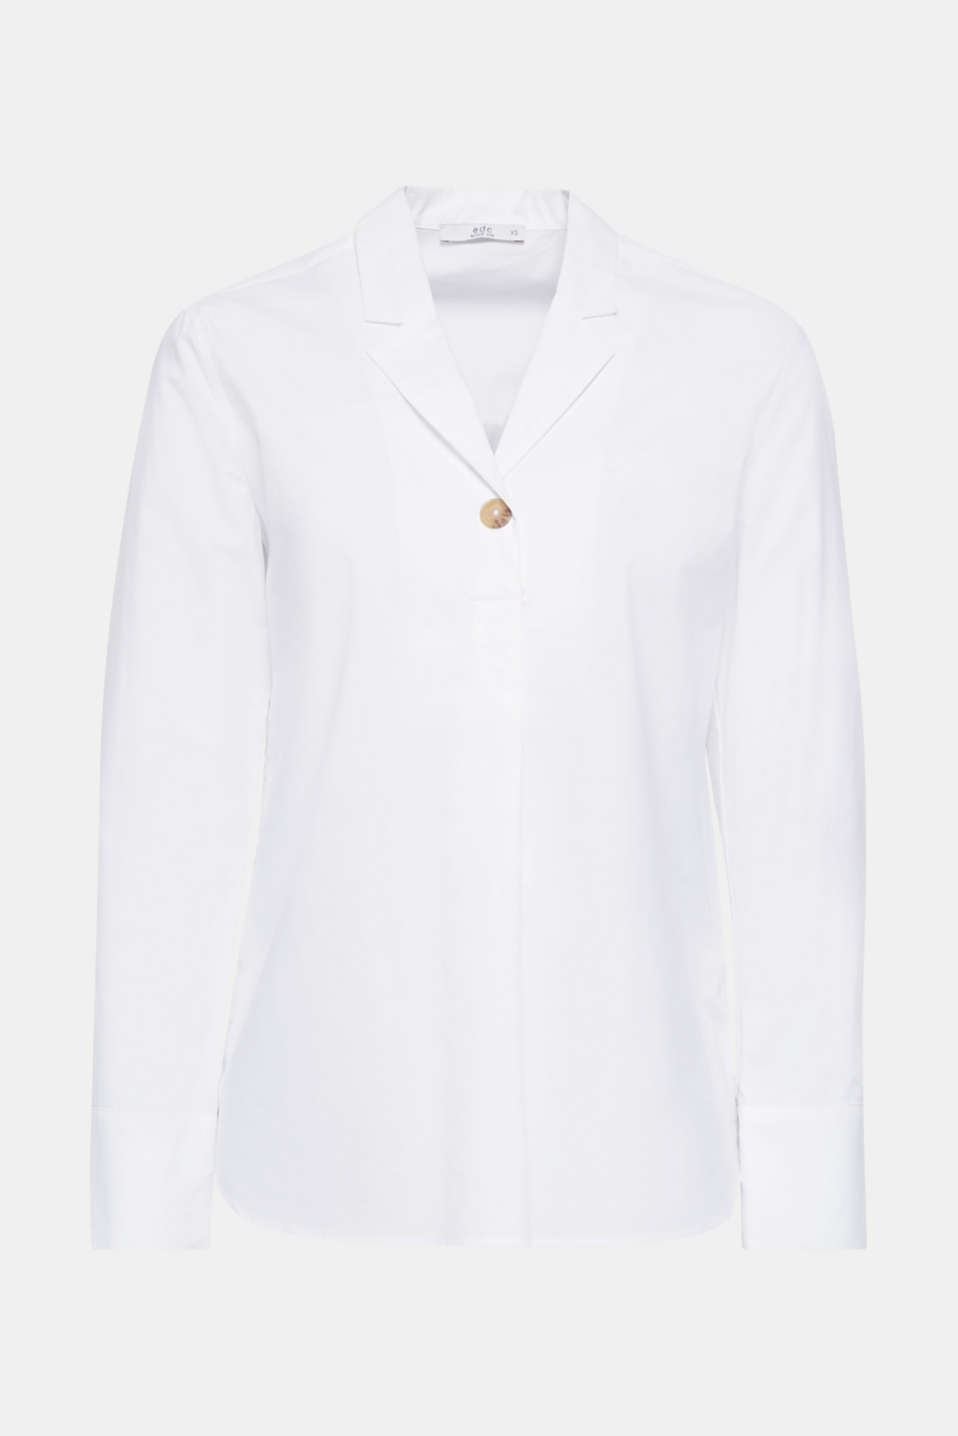 Slip-on blouse with a lapel collar, 100% cotton, WHITE, detail image number 6